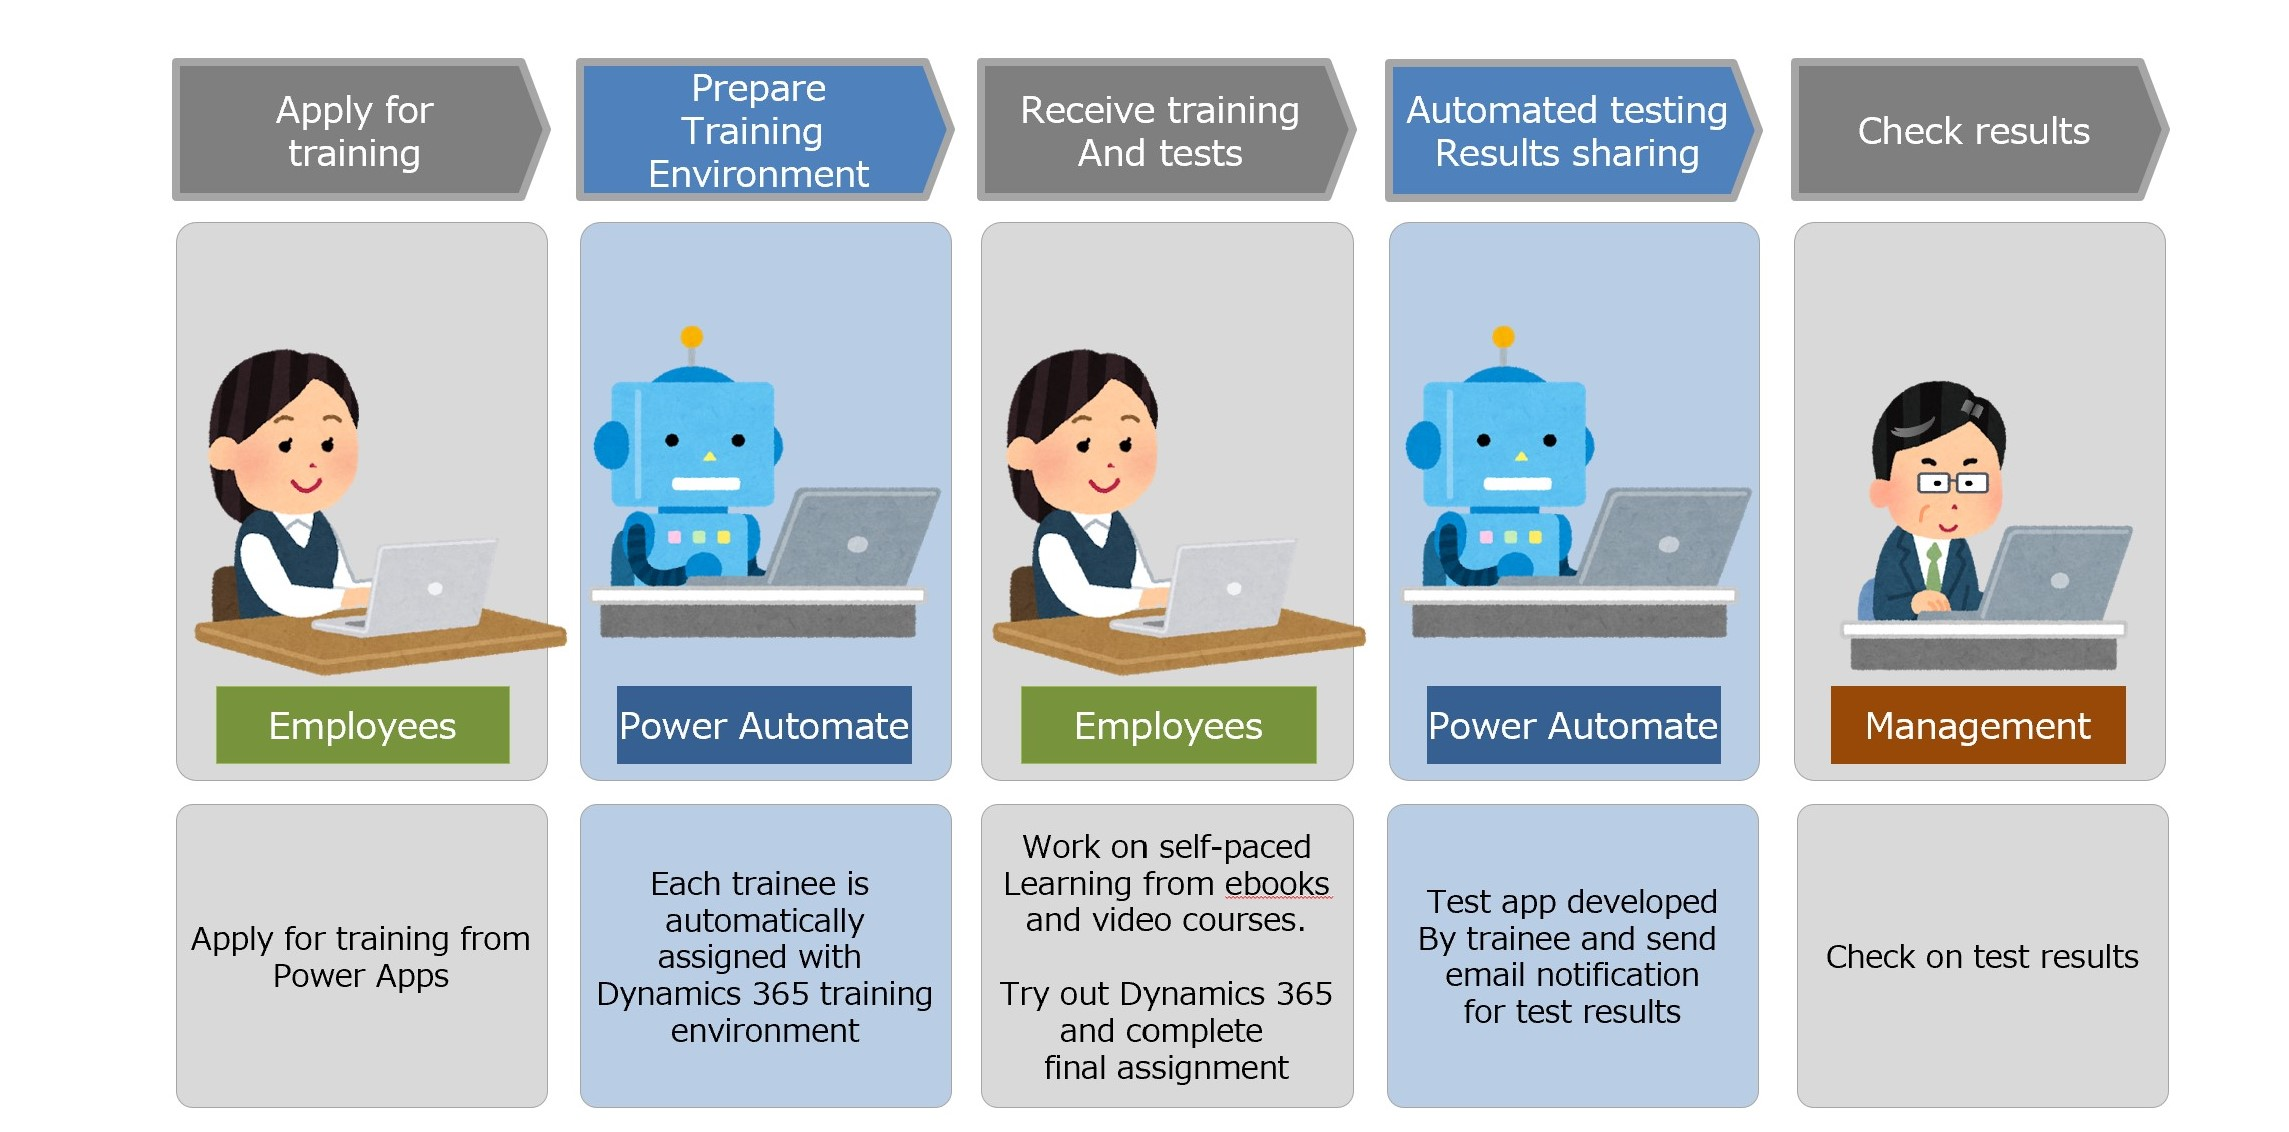 Aioi Nissay drives business process automation with Power Automate UI Flows to optimize citizen developer training